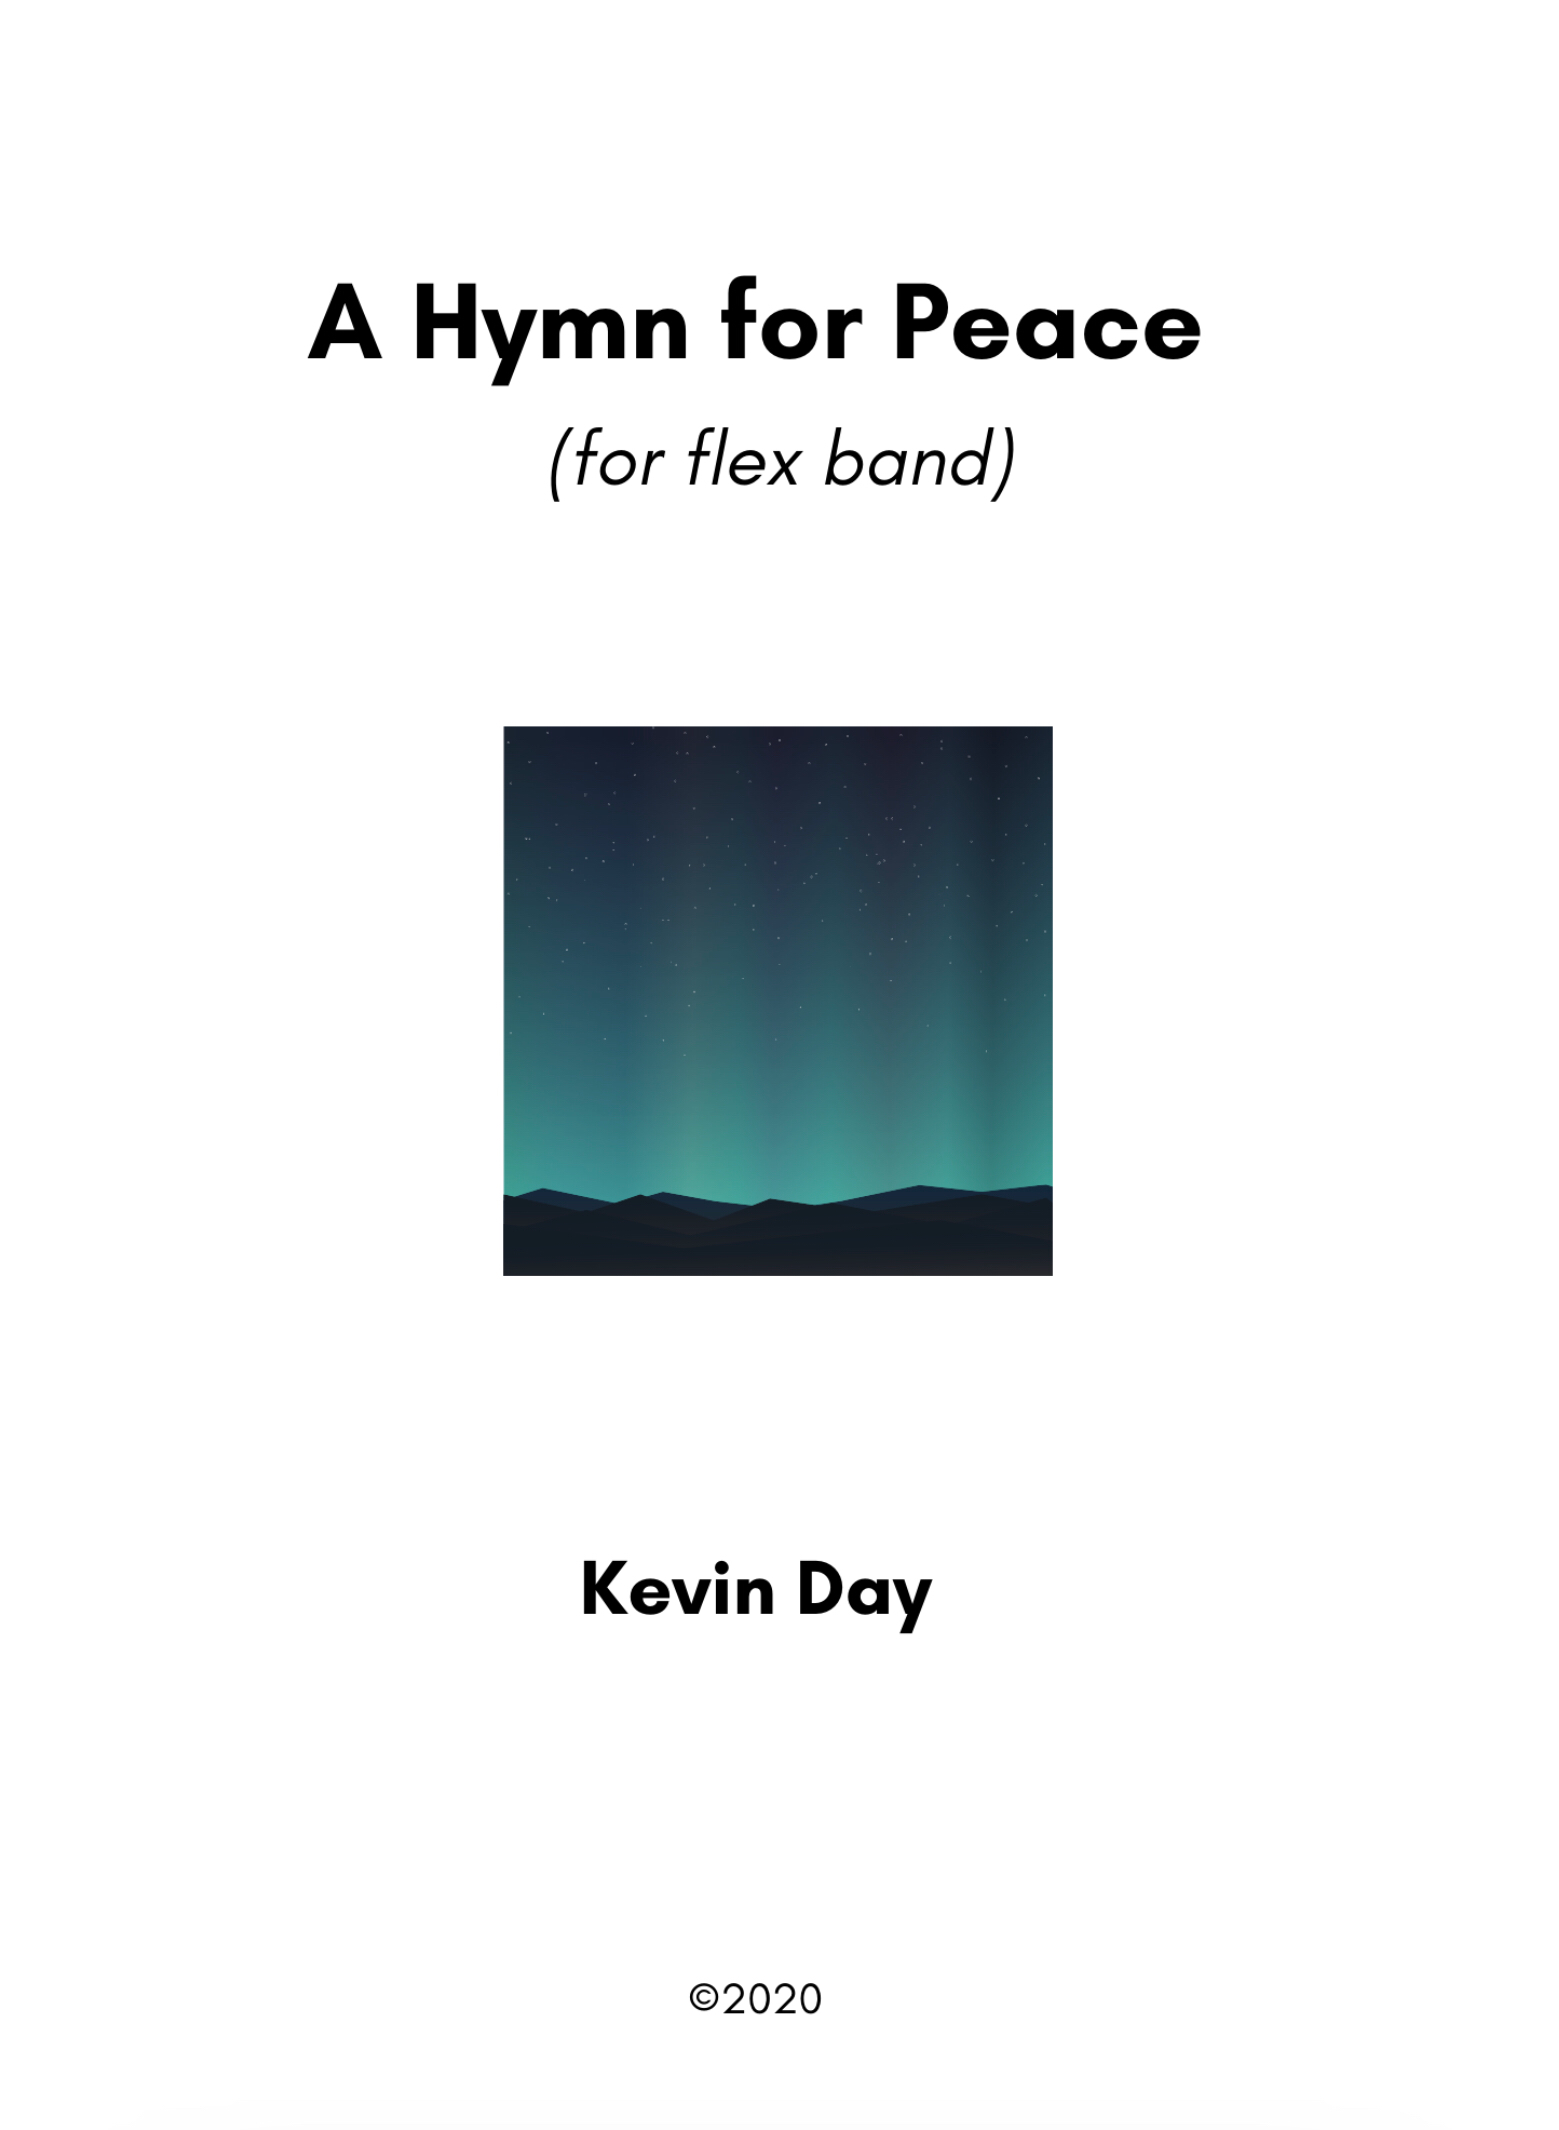 A Hymn For Peace (Flex Band Version) by Kevin Day